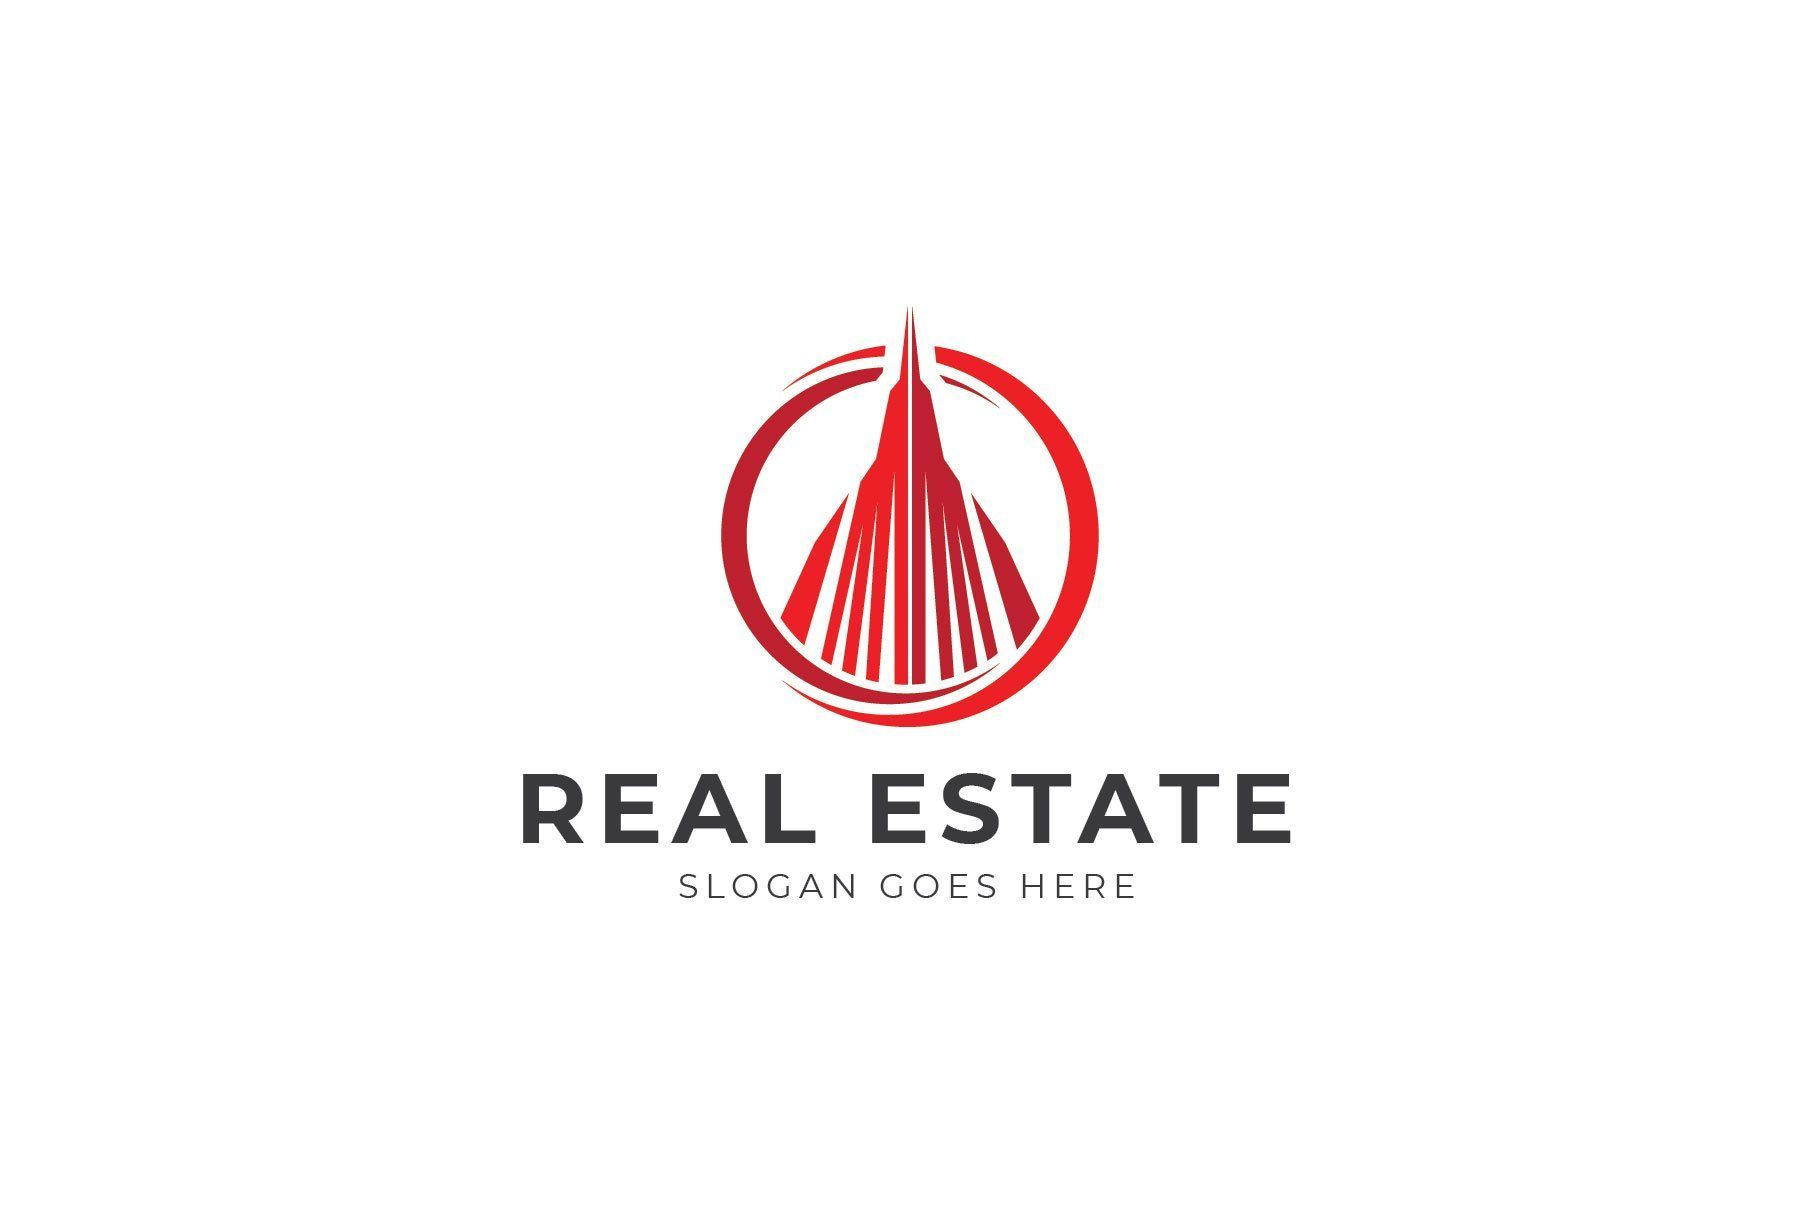 Building Real Estate Colored abstract branding